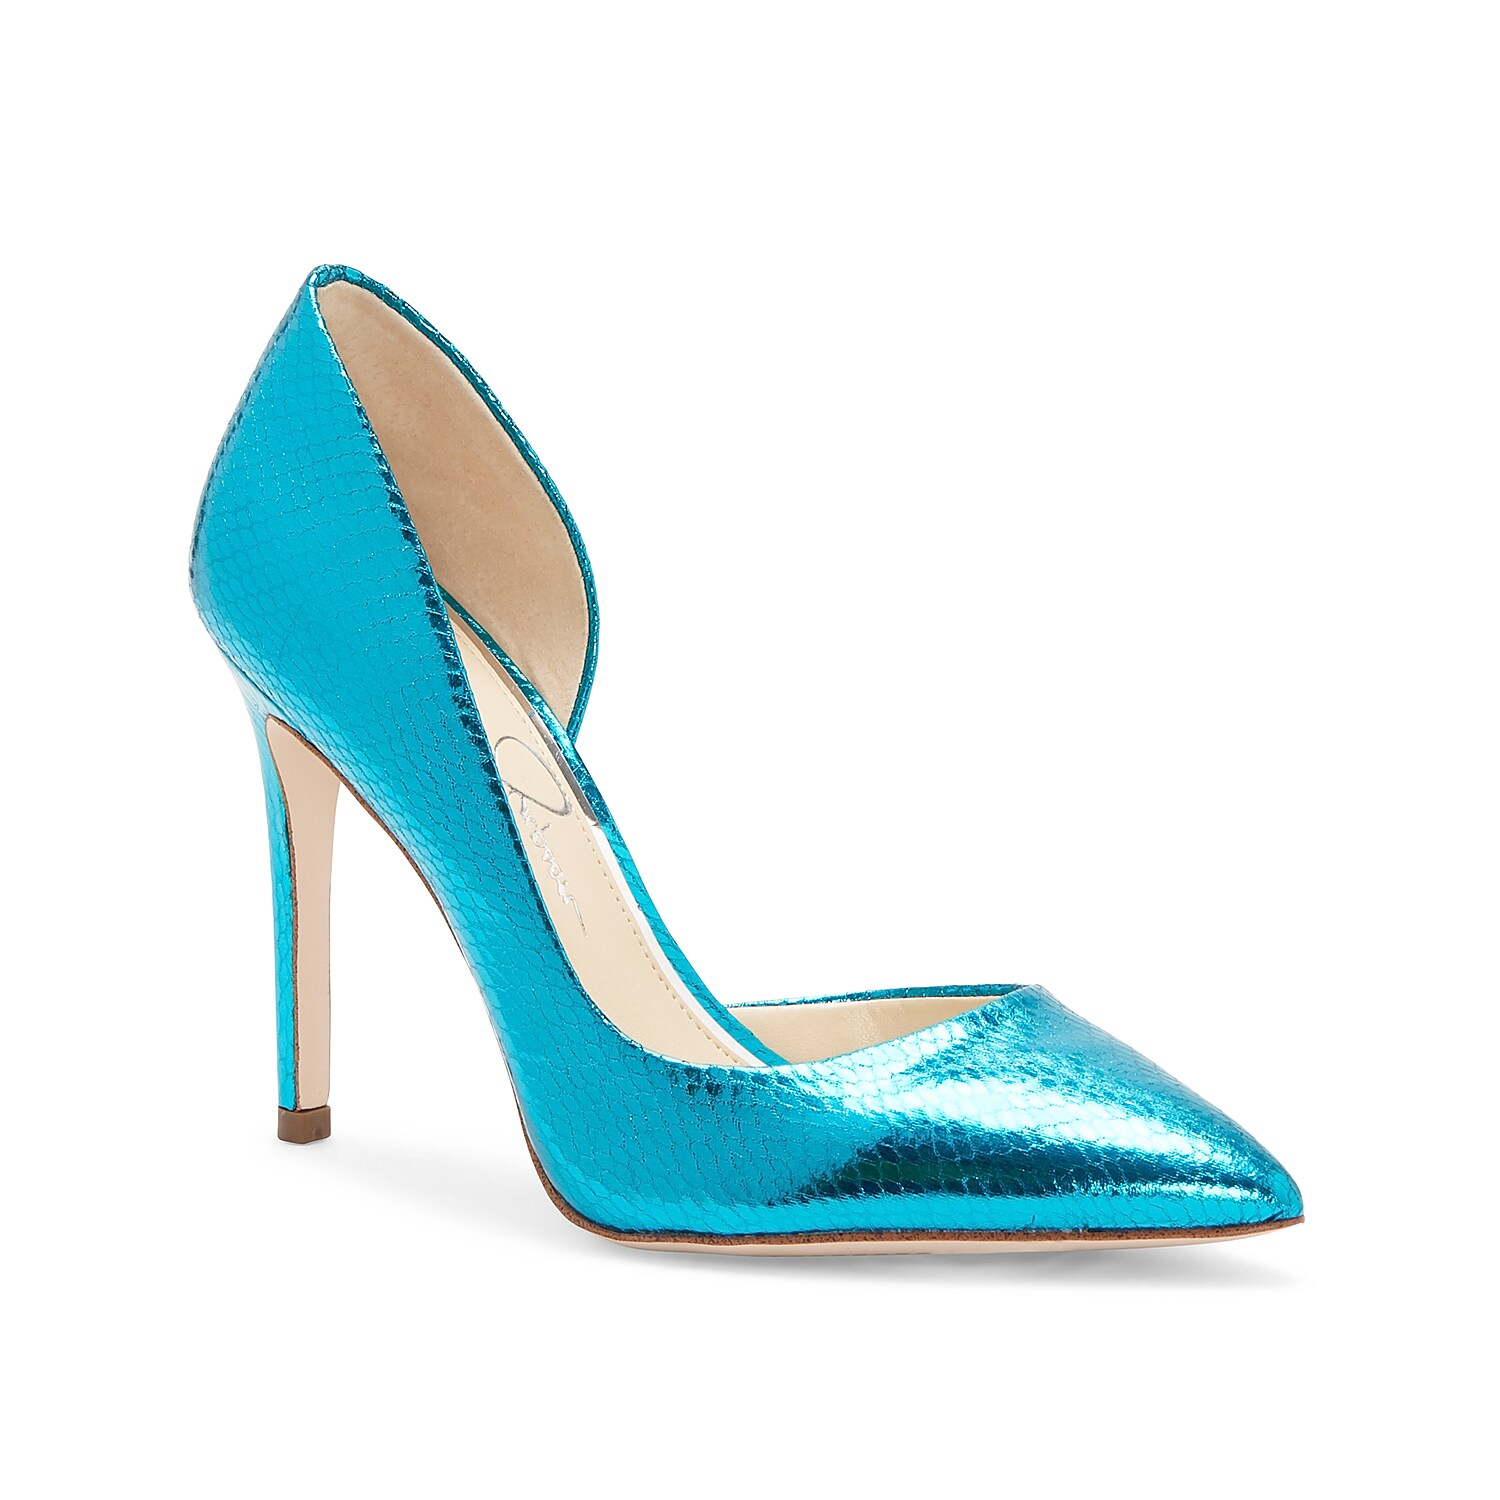 Embrace your wild style with the Pheona pump from Jessica Simpson. Featuring d\\\'Orsay styling with a towering stiletto, this pair will have heads turning.